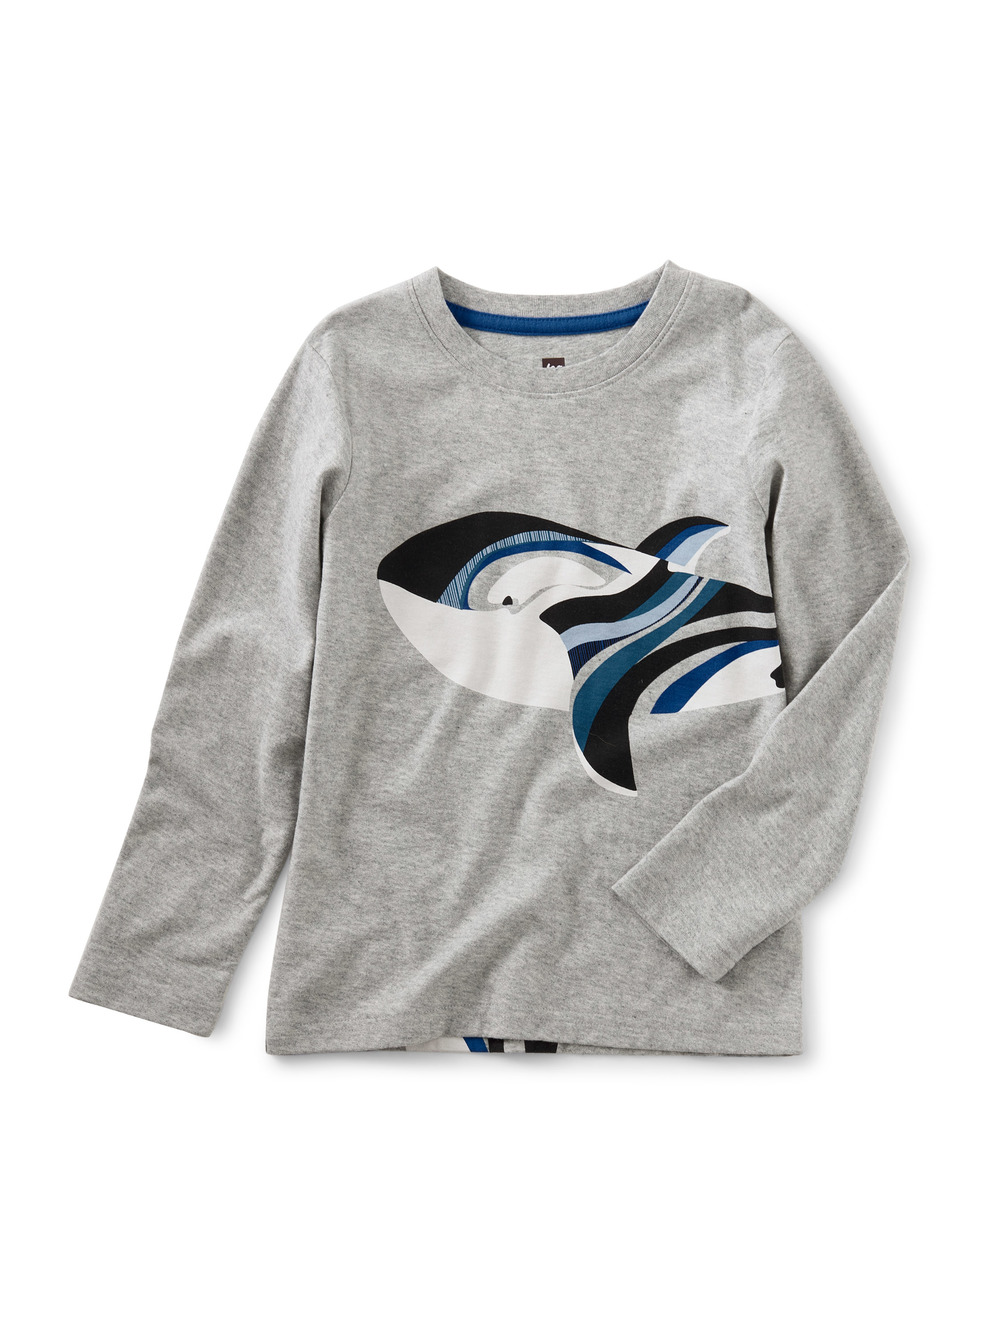 Tails of the Sea Graphic Tee